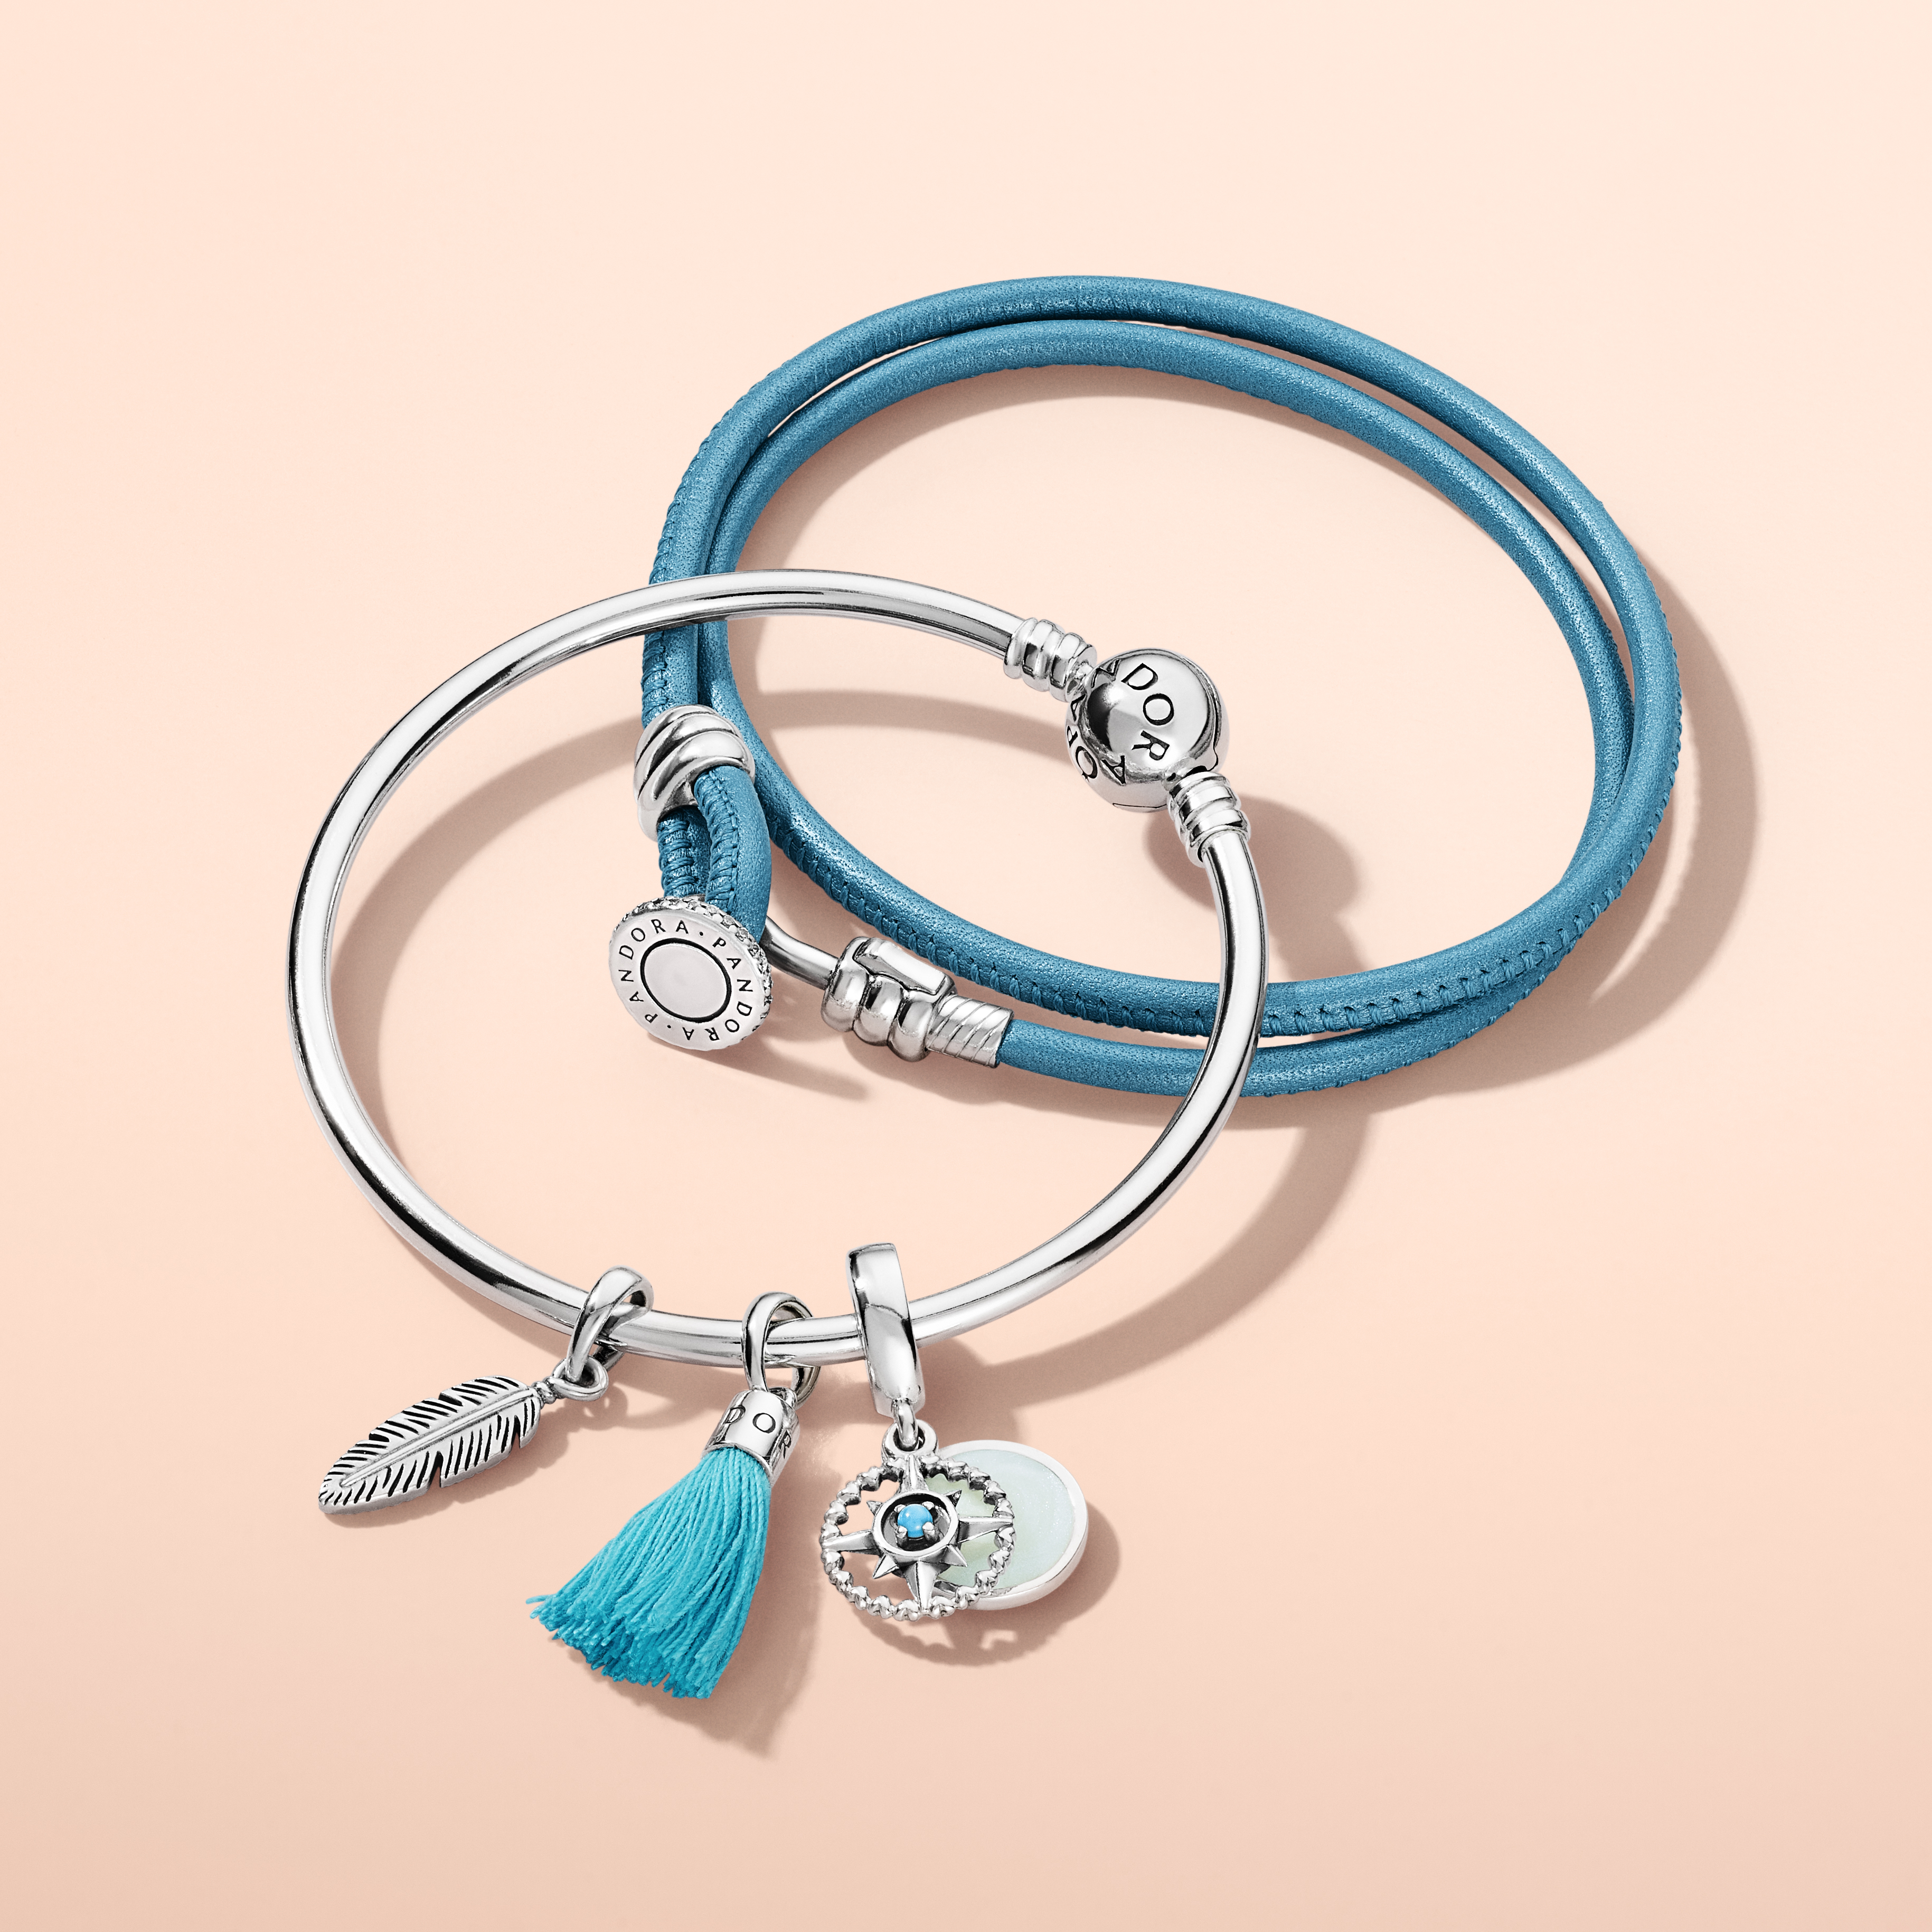 PANDORA Summer: Explore More